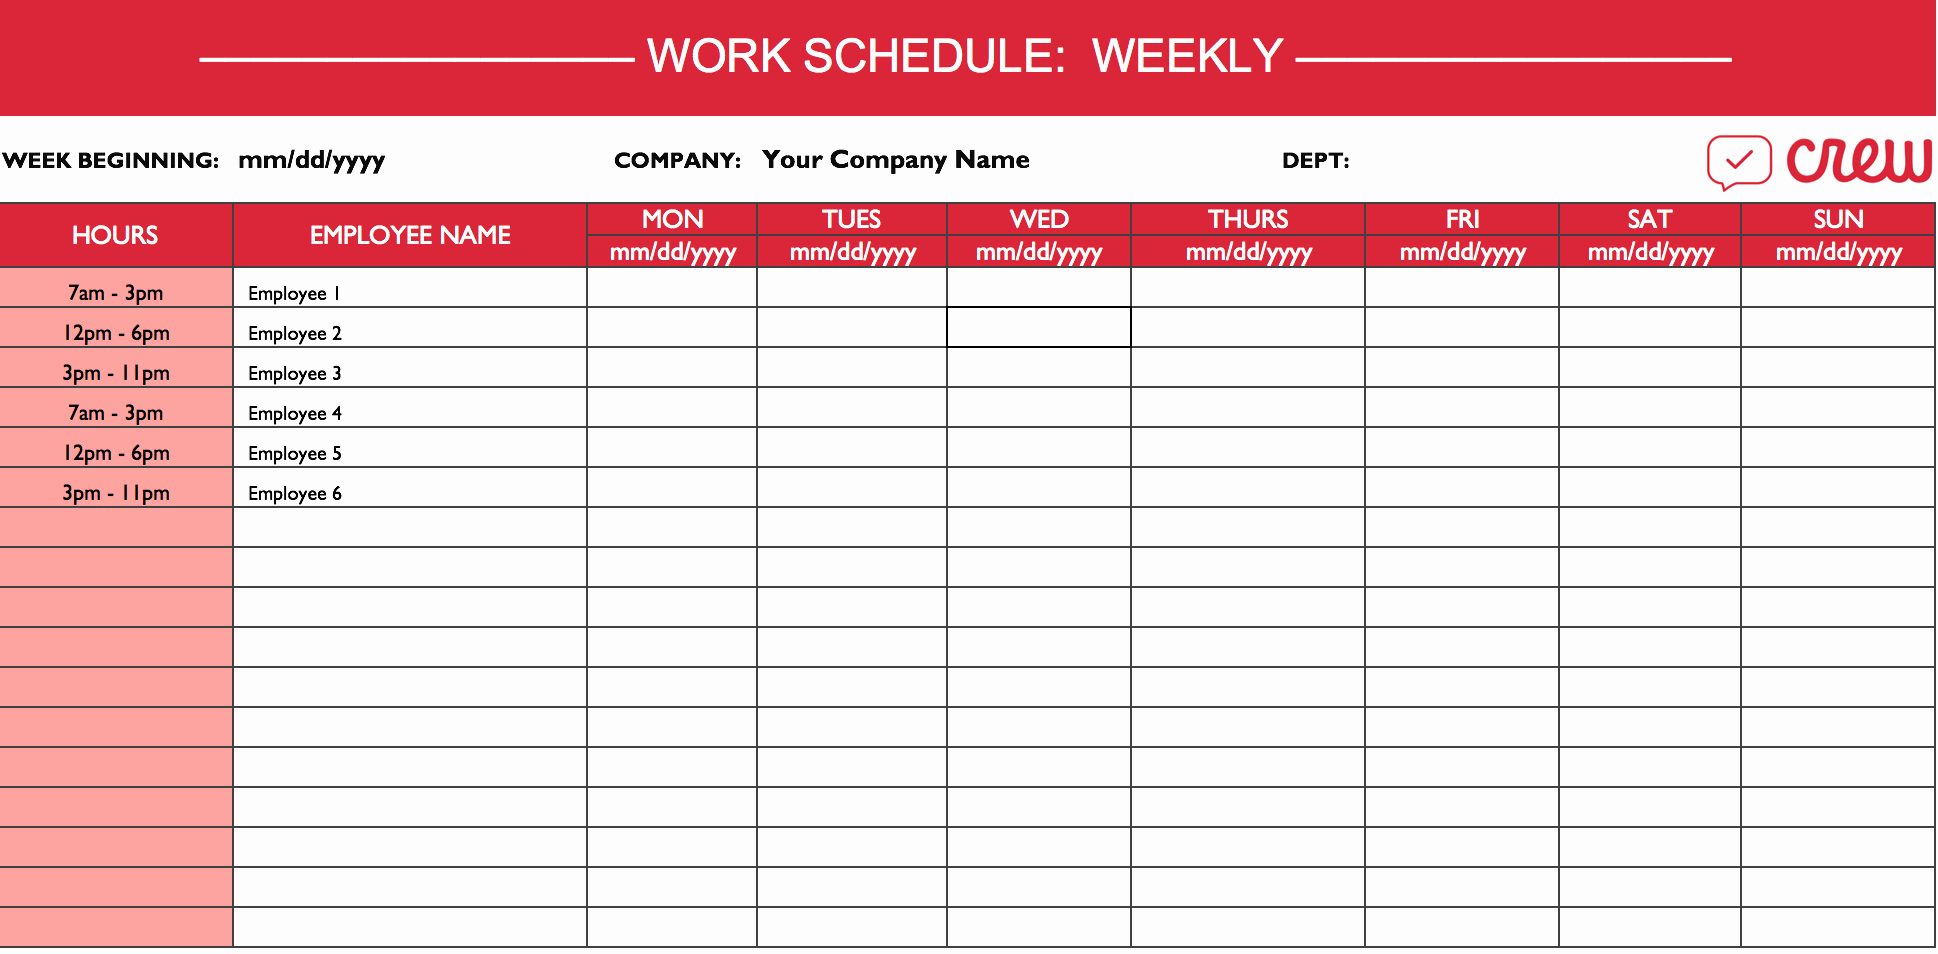 Employee Schedule Template Free Download Lovely Weekly Work Schedule Template I Crew